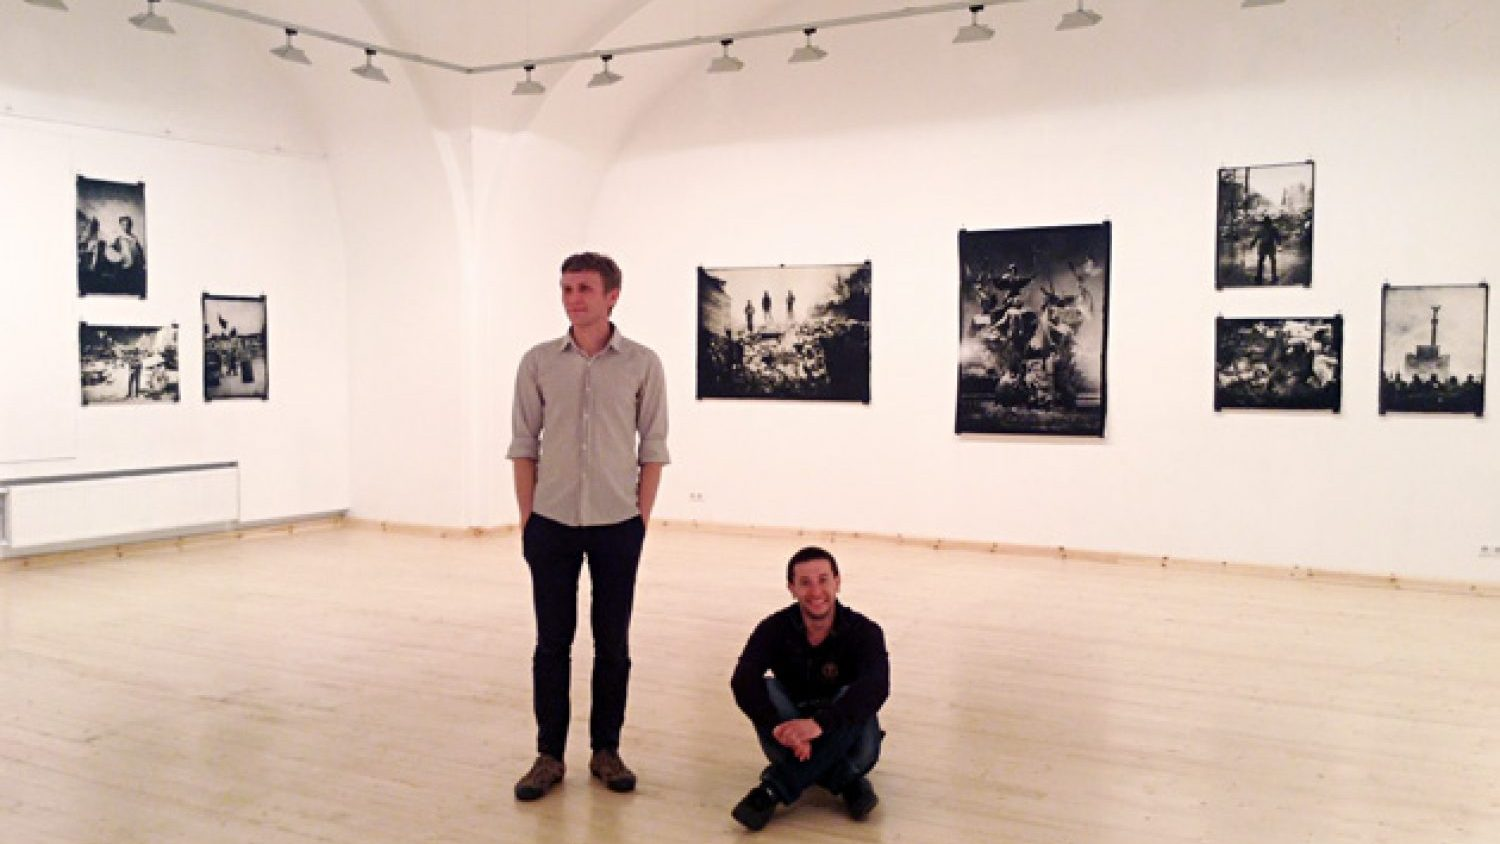 Sergiy and Vlad at the exhibition hall Arsenāls. Photo by Arnis Balčus